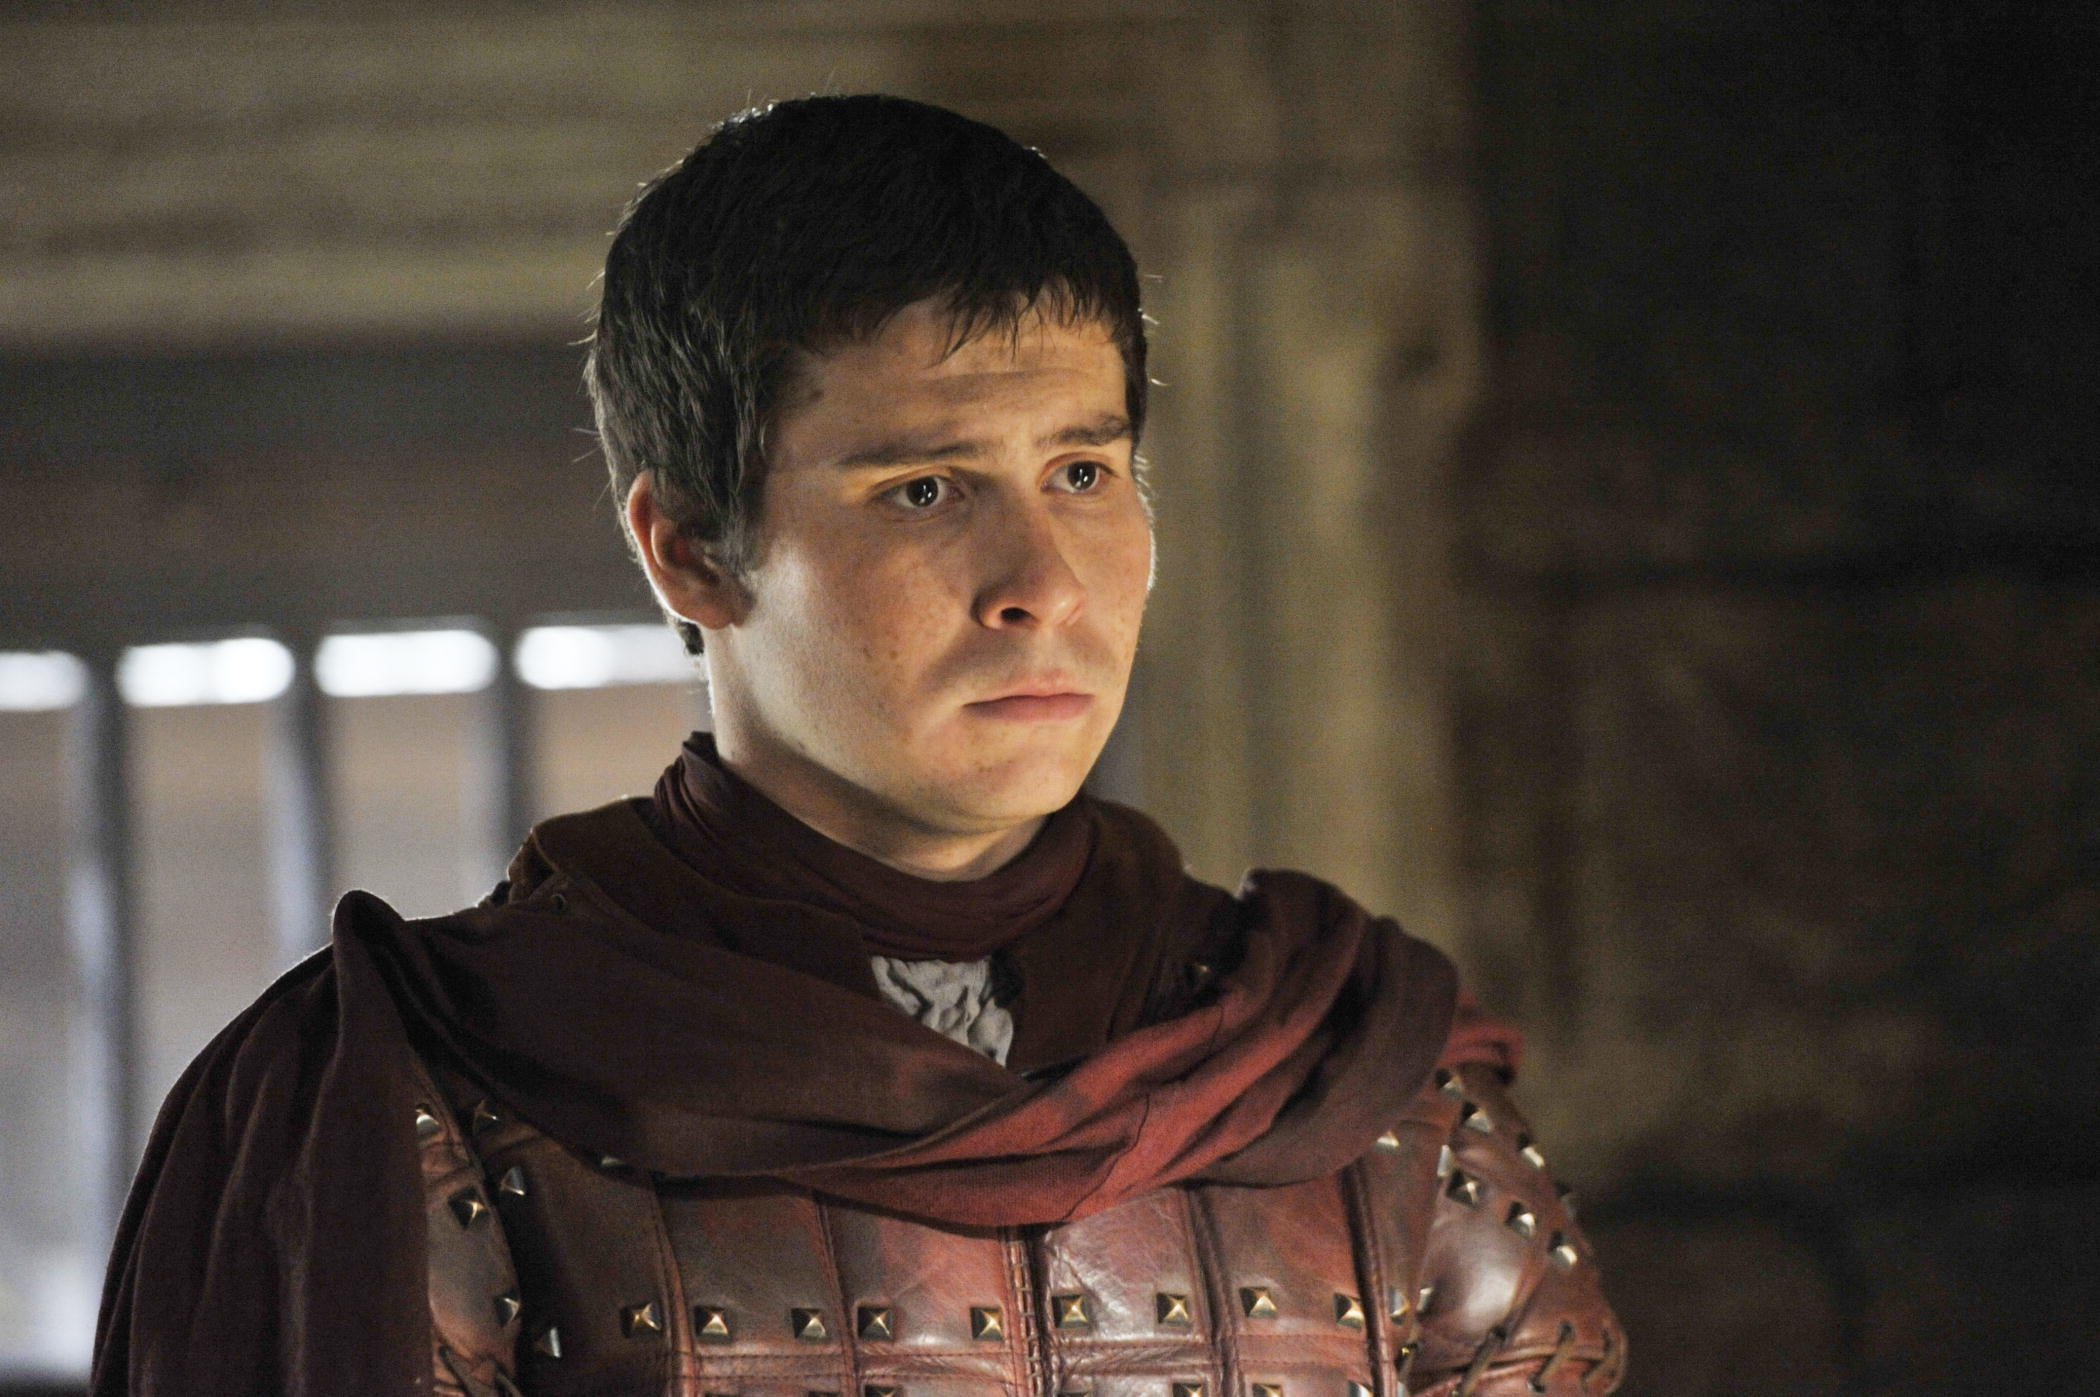 podrick game of thrones